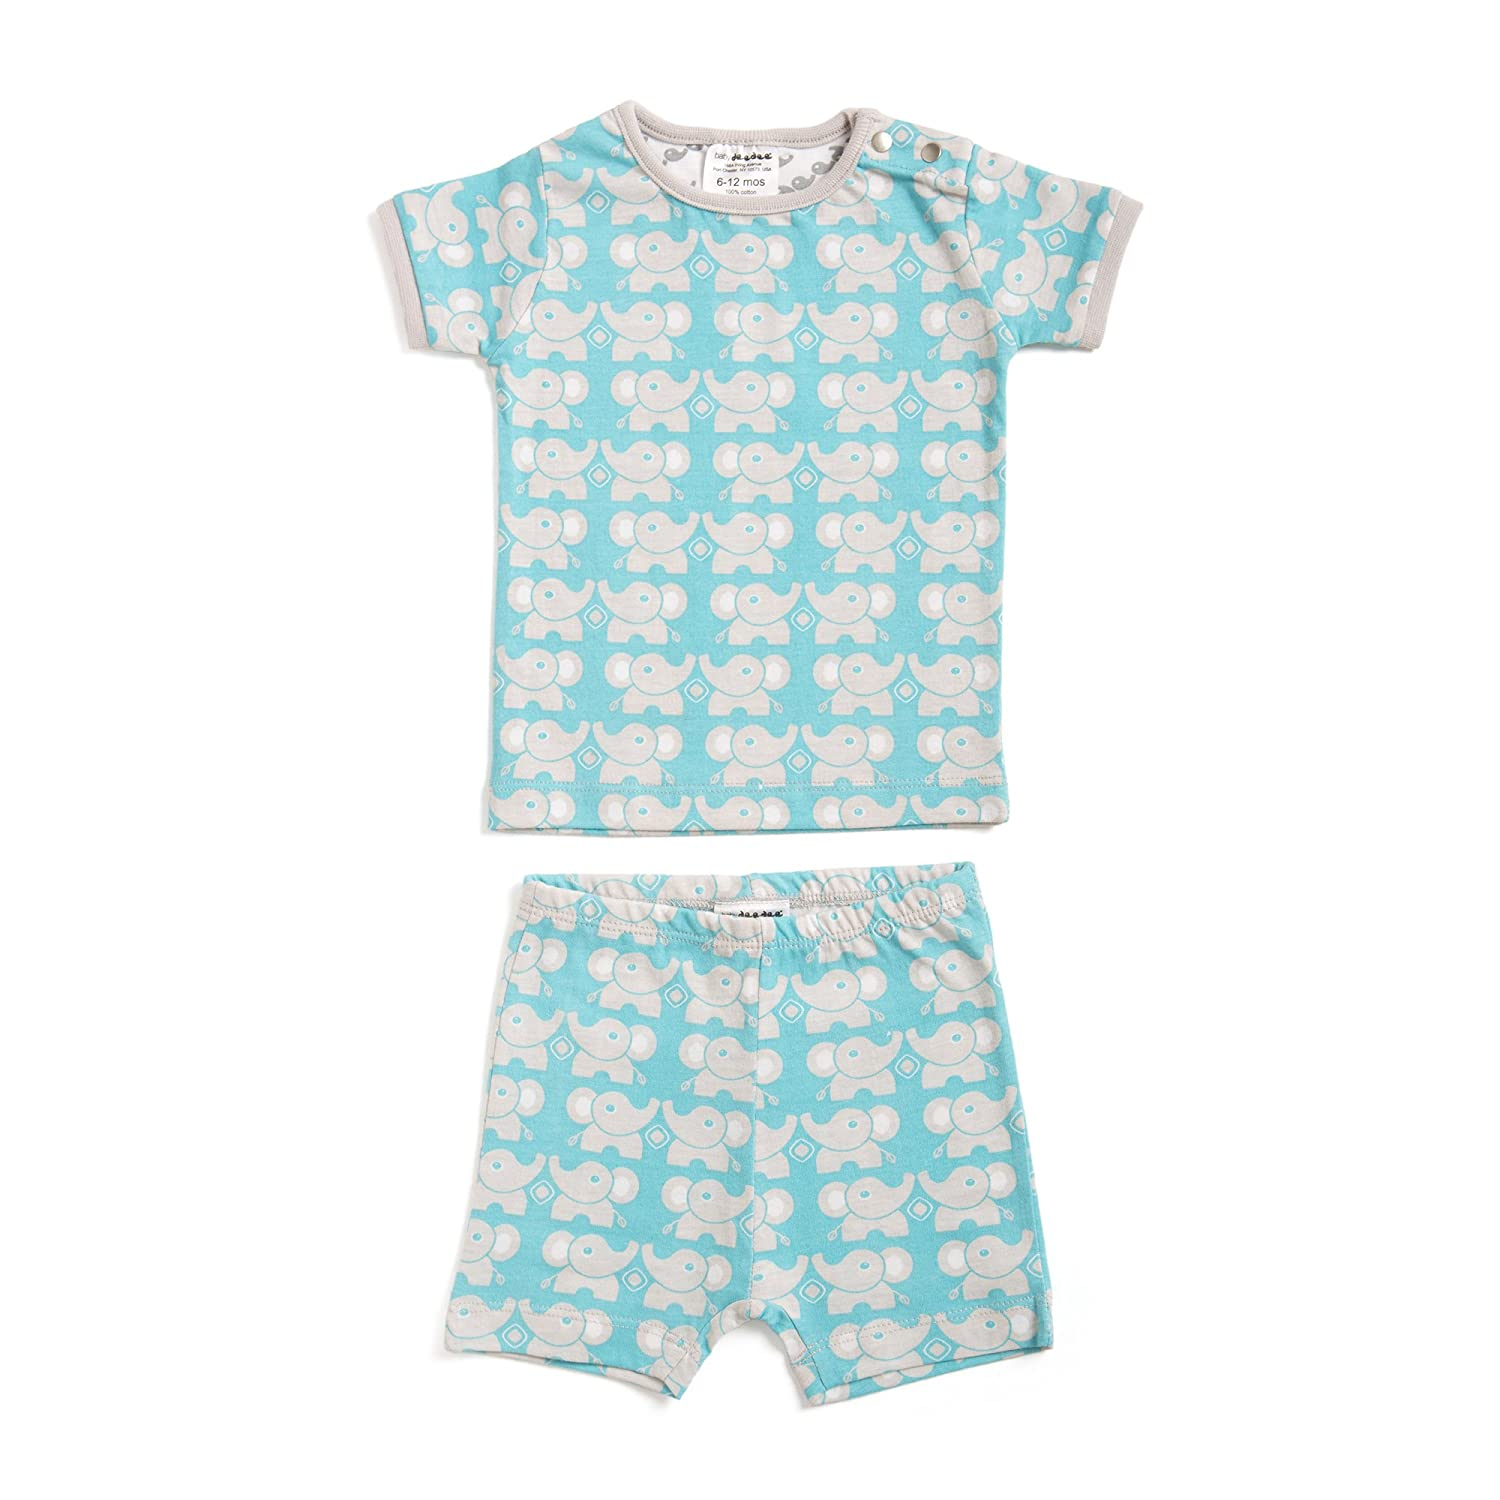 baby deedee Short Sleeve Cotton 2 Piece Tee Shirt//Shorts and Pajama Play Set 6-12 Months Teal Elephant